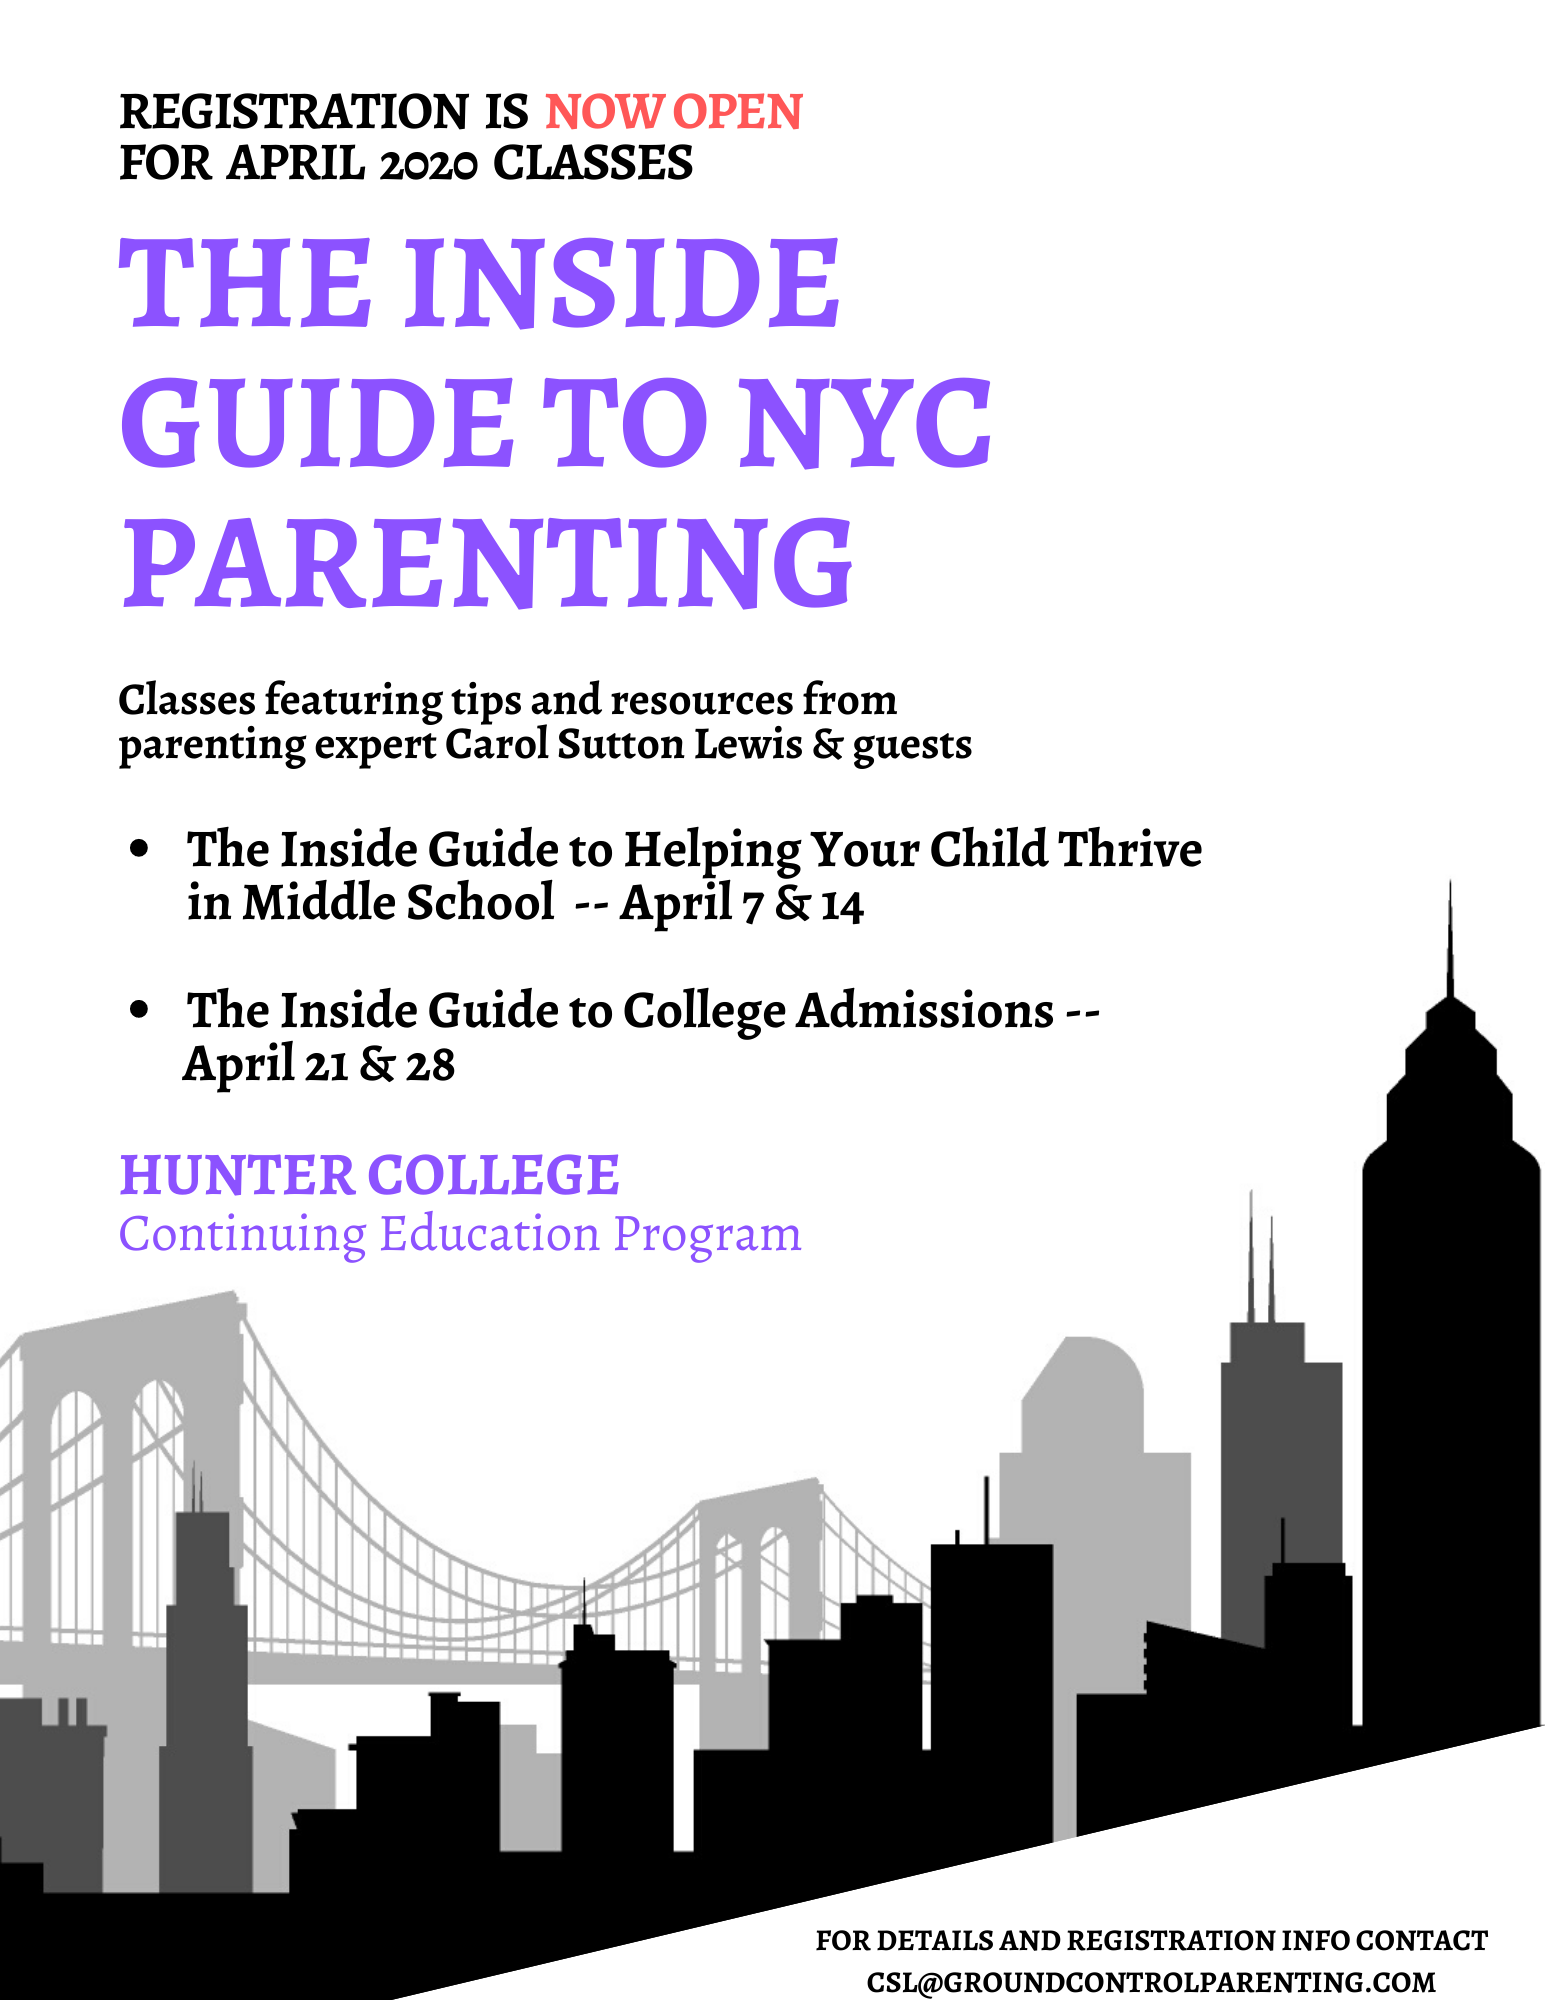 The Inside Guide to NYC Parenting – Back in April 2020!